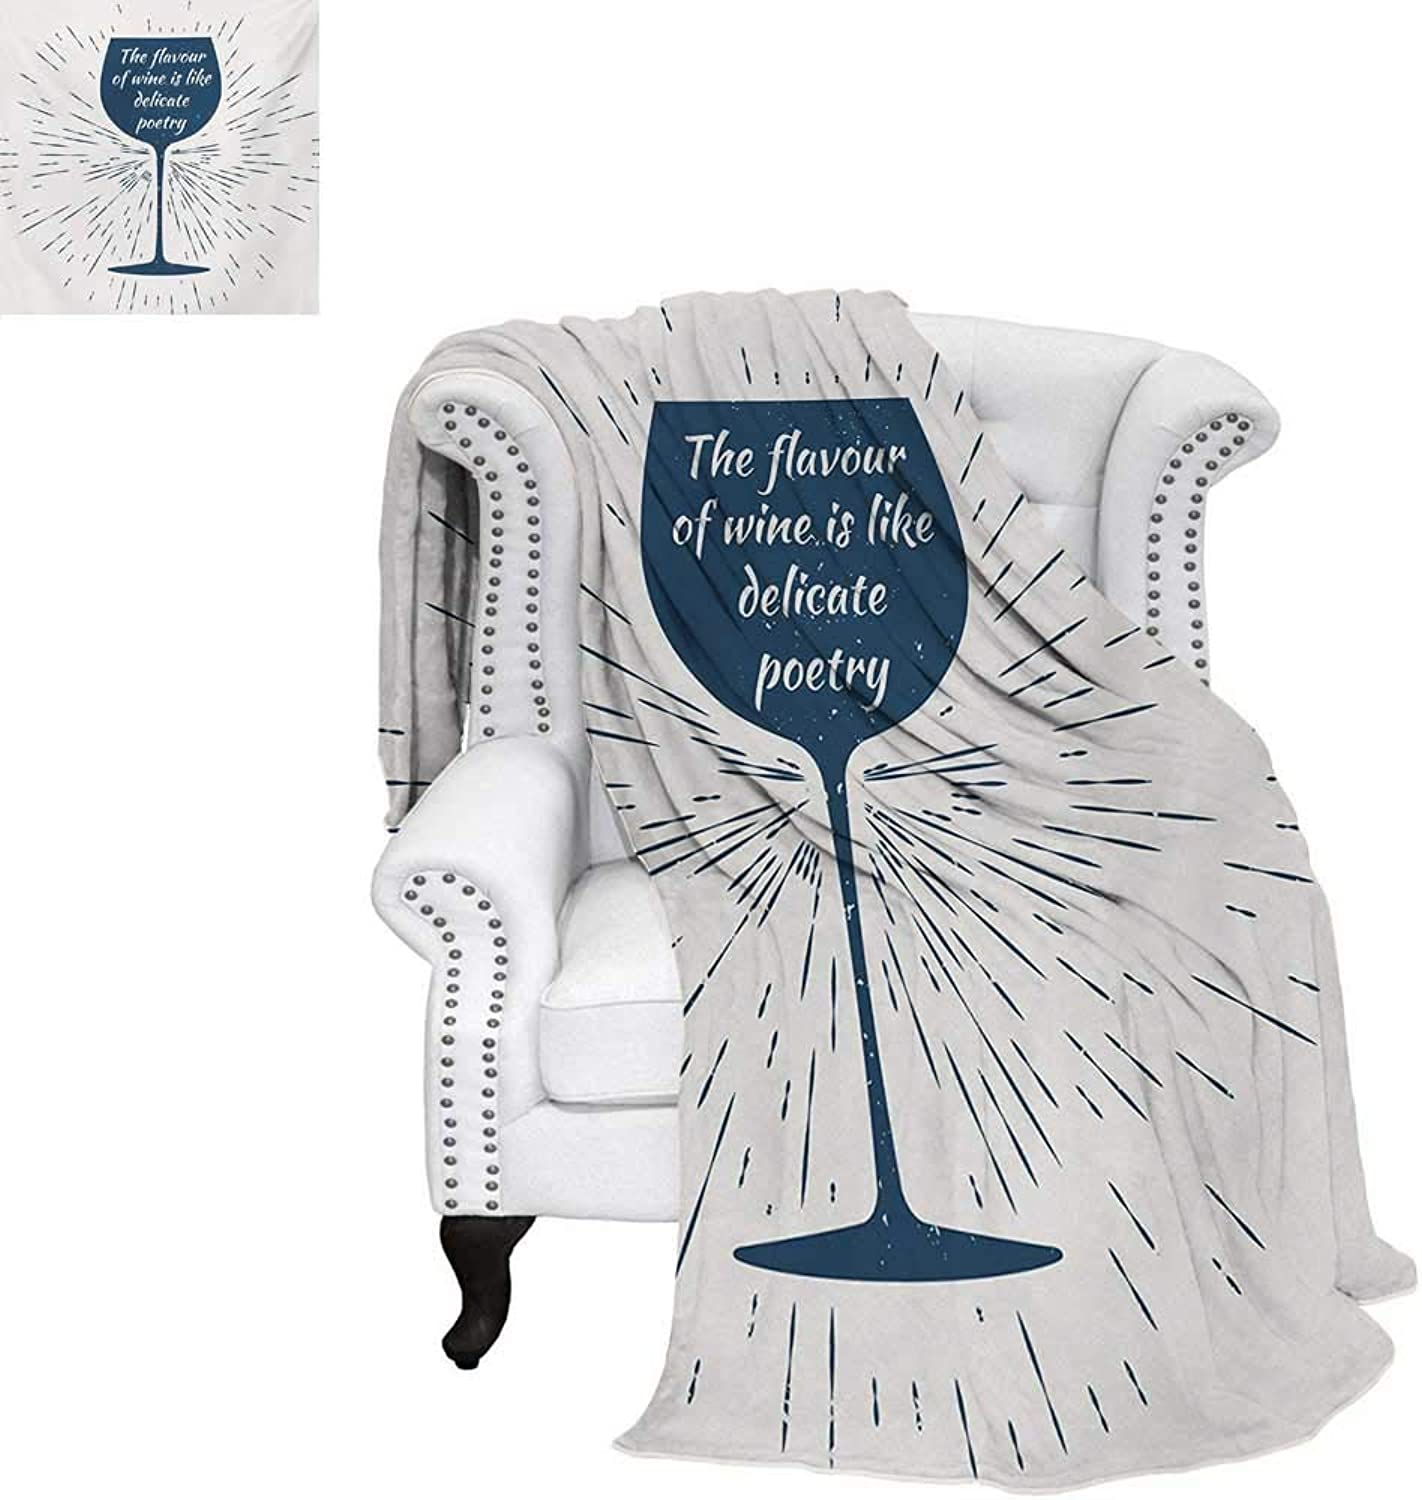 Warmfamily Wine Summer Quilt Comforter Wine Glass Vintage Sun Burst Frame The Flavor is Like Delicate Poetry Quote Digital Printing Blanket 60 x50  Night bluee White